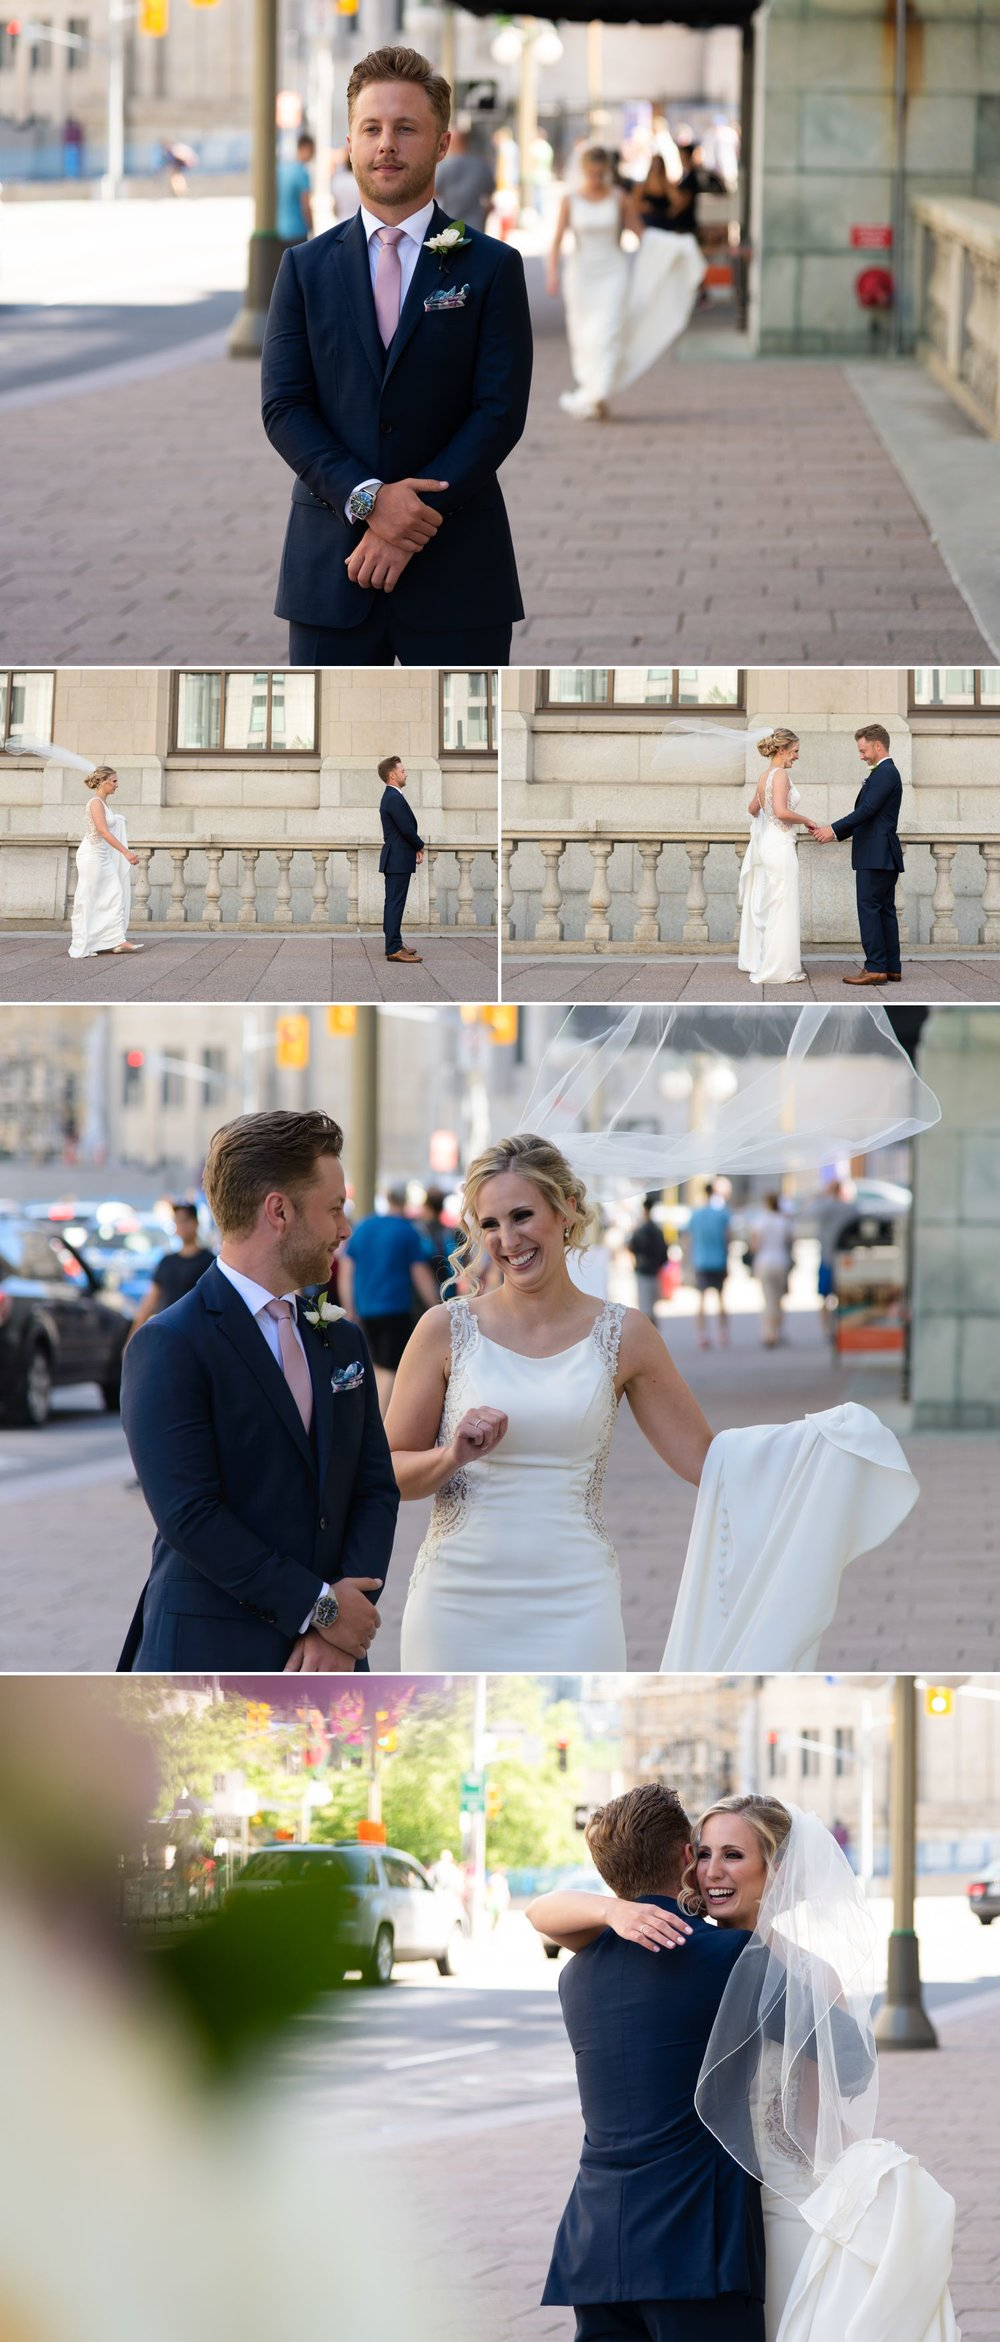 The bride and groom during their first look in front of The Chateau Laurier in downtown Ottawa